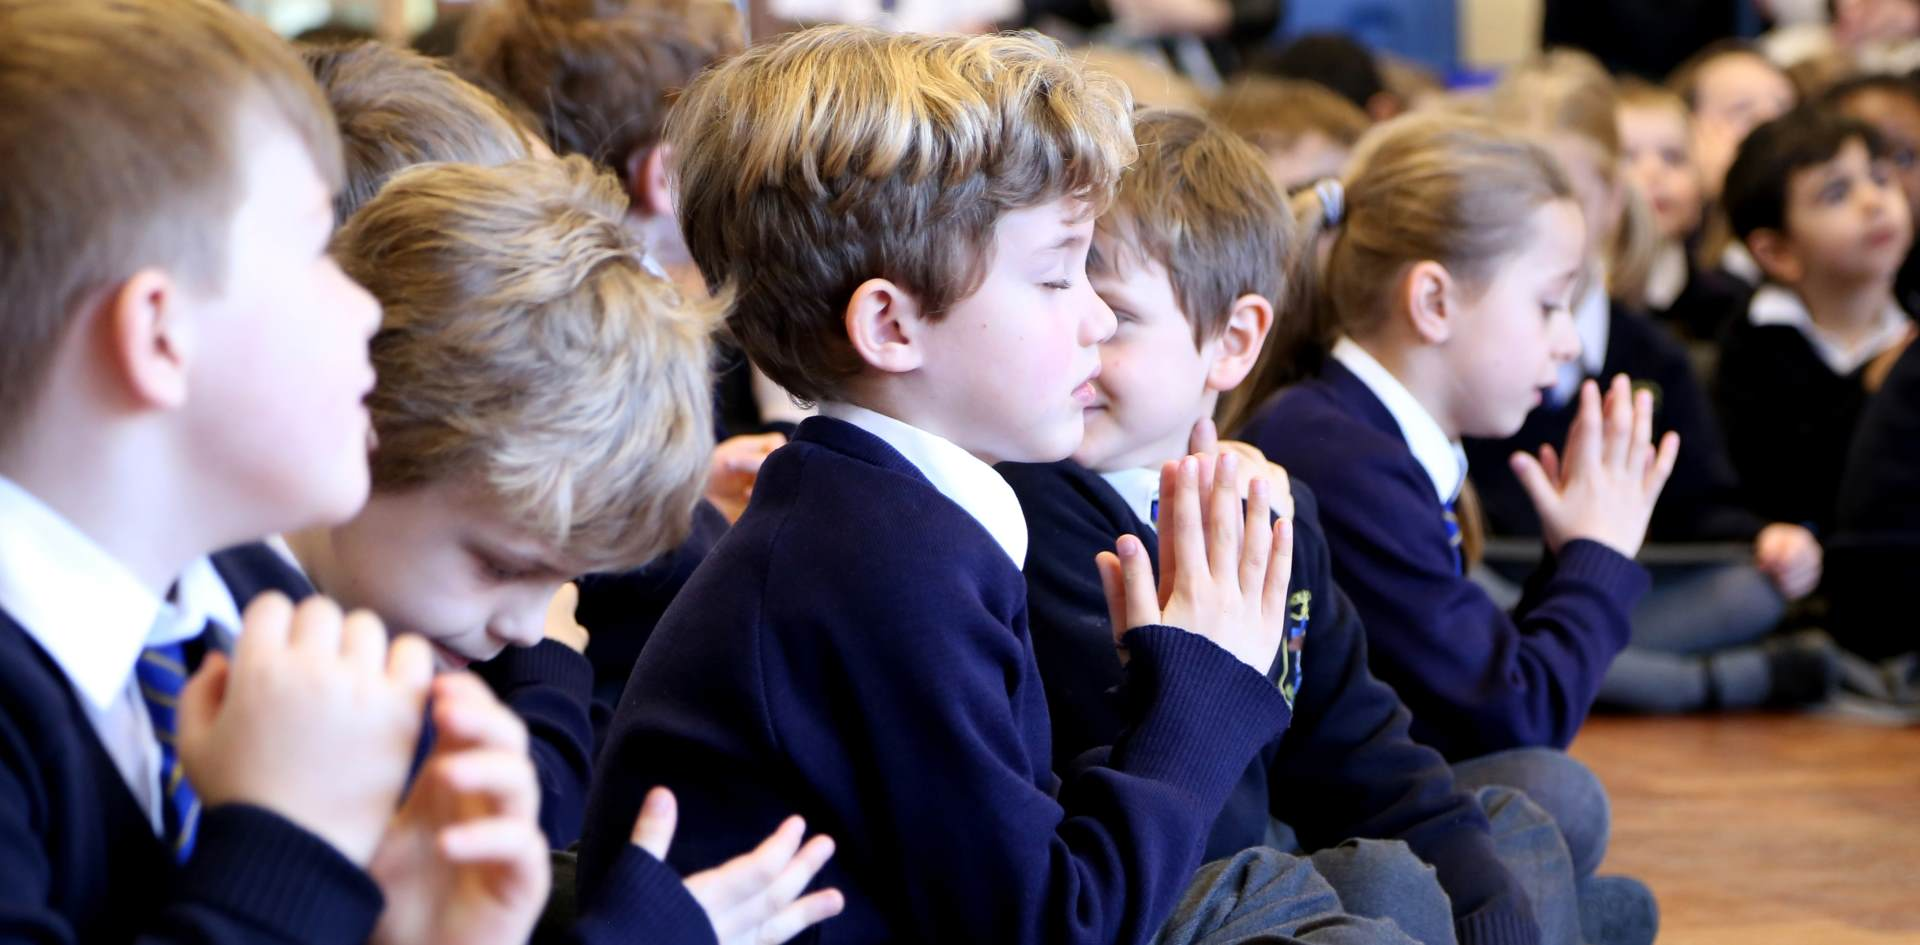 Life at St John's Catholic Primary School